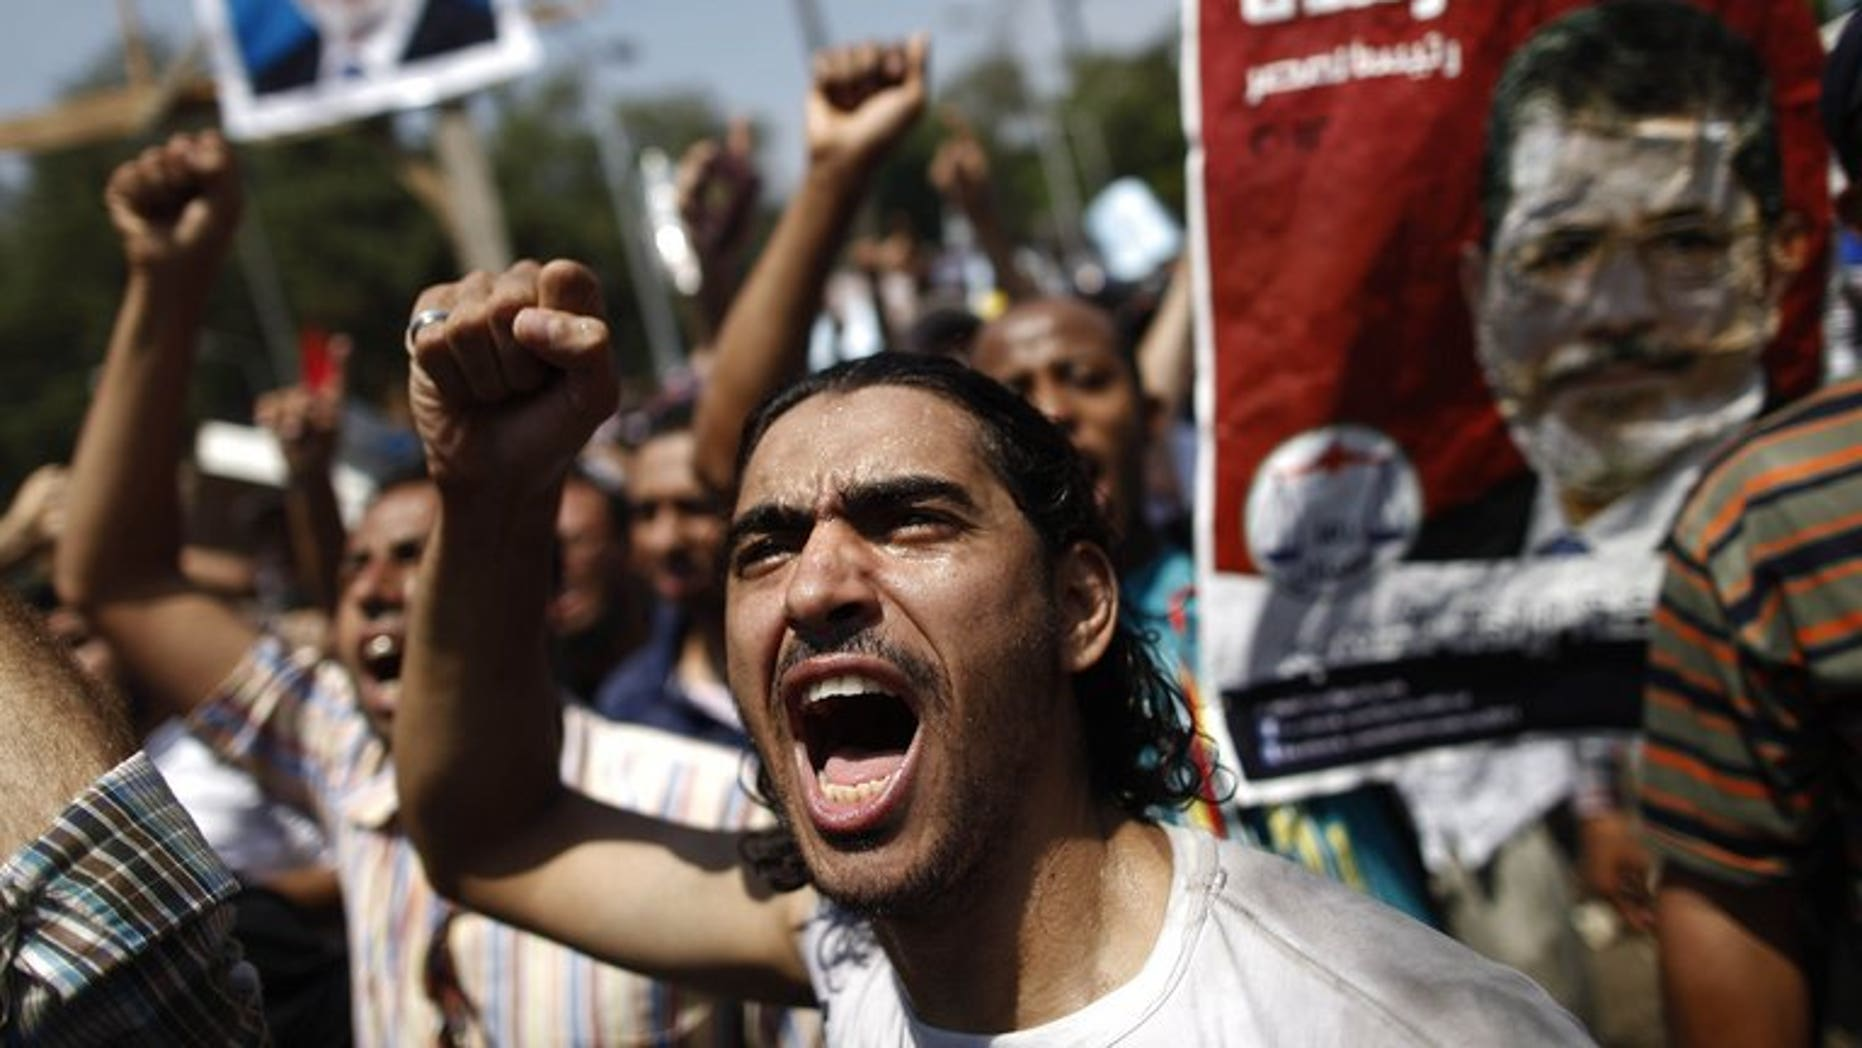 An Egyptian supporter of the Muslim Brotherhood shouts slogans during a protest near Cairo University on July 5, 2013. Egypt's public prosecutor on Sunday ordered the freezing of assets belonging to 14 top Islamists as part of an investigation into deadly violence, according to judicial sources.